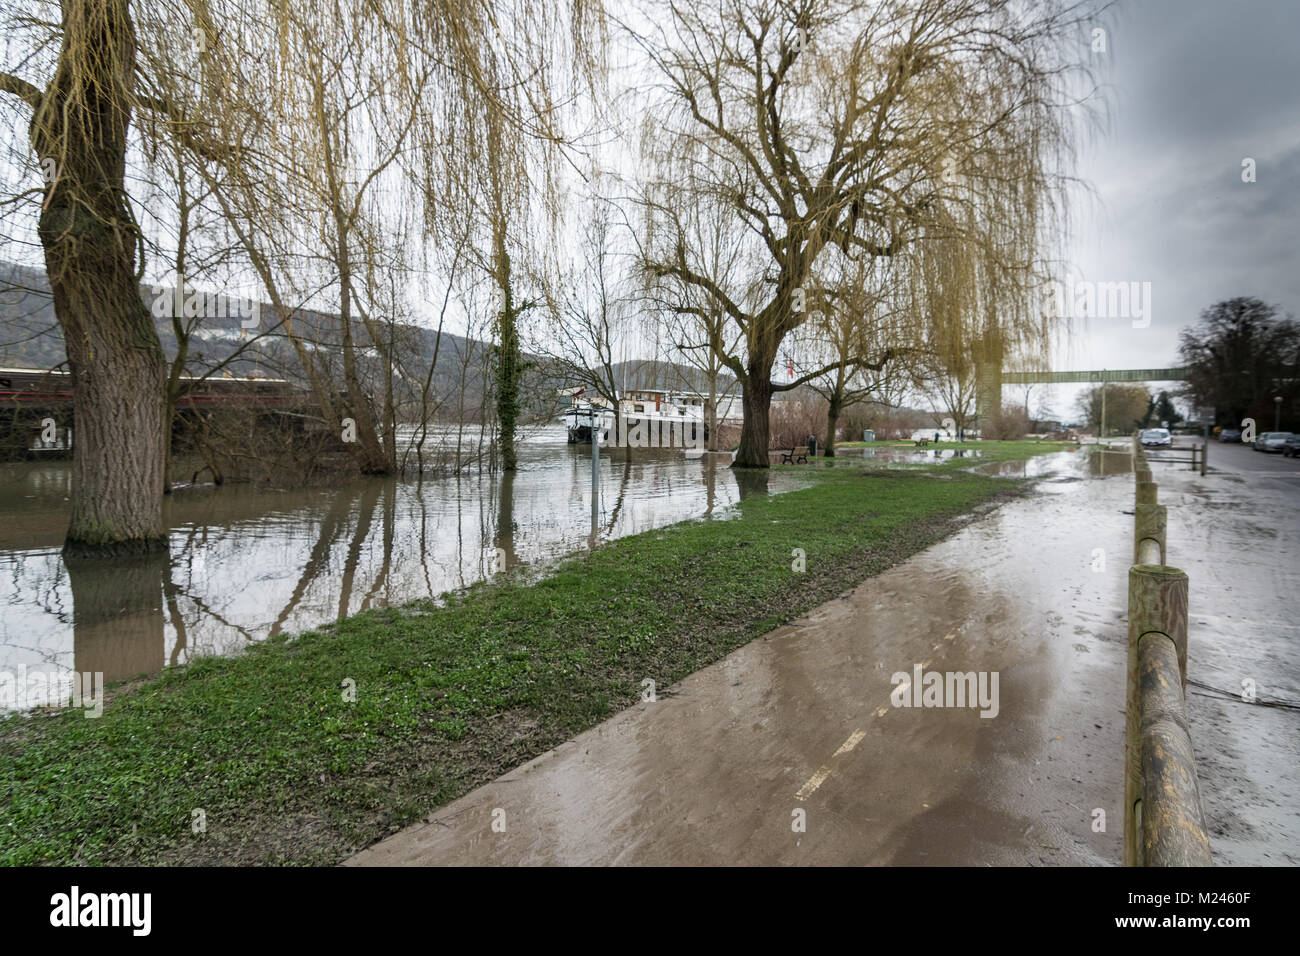 Vernon, France - 4th February 2018 : River Seine flooding roads in Vernon, France, 2018 Credit: RichFearon/Alamy - Stock Image